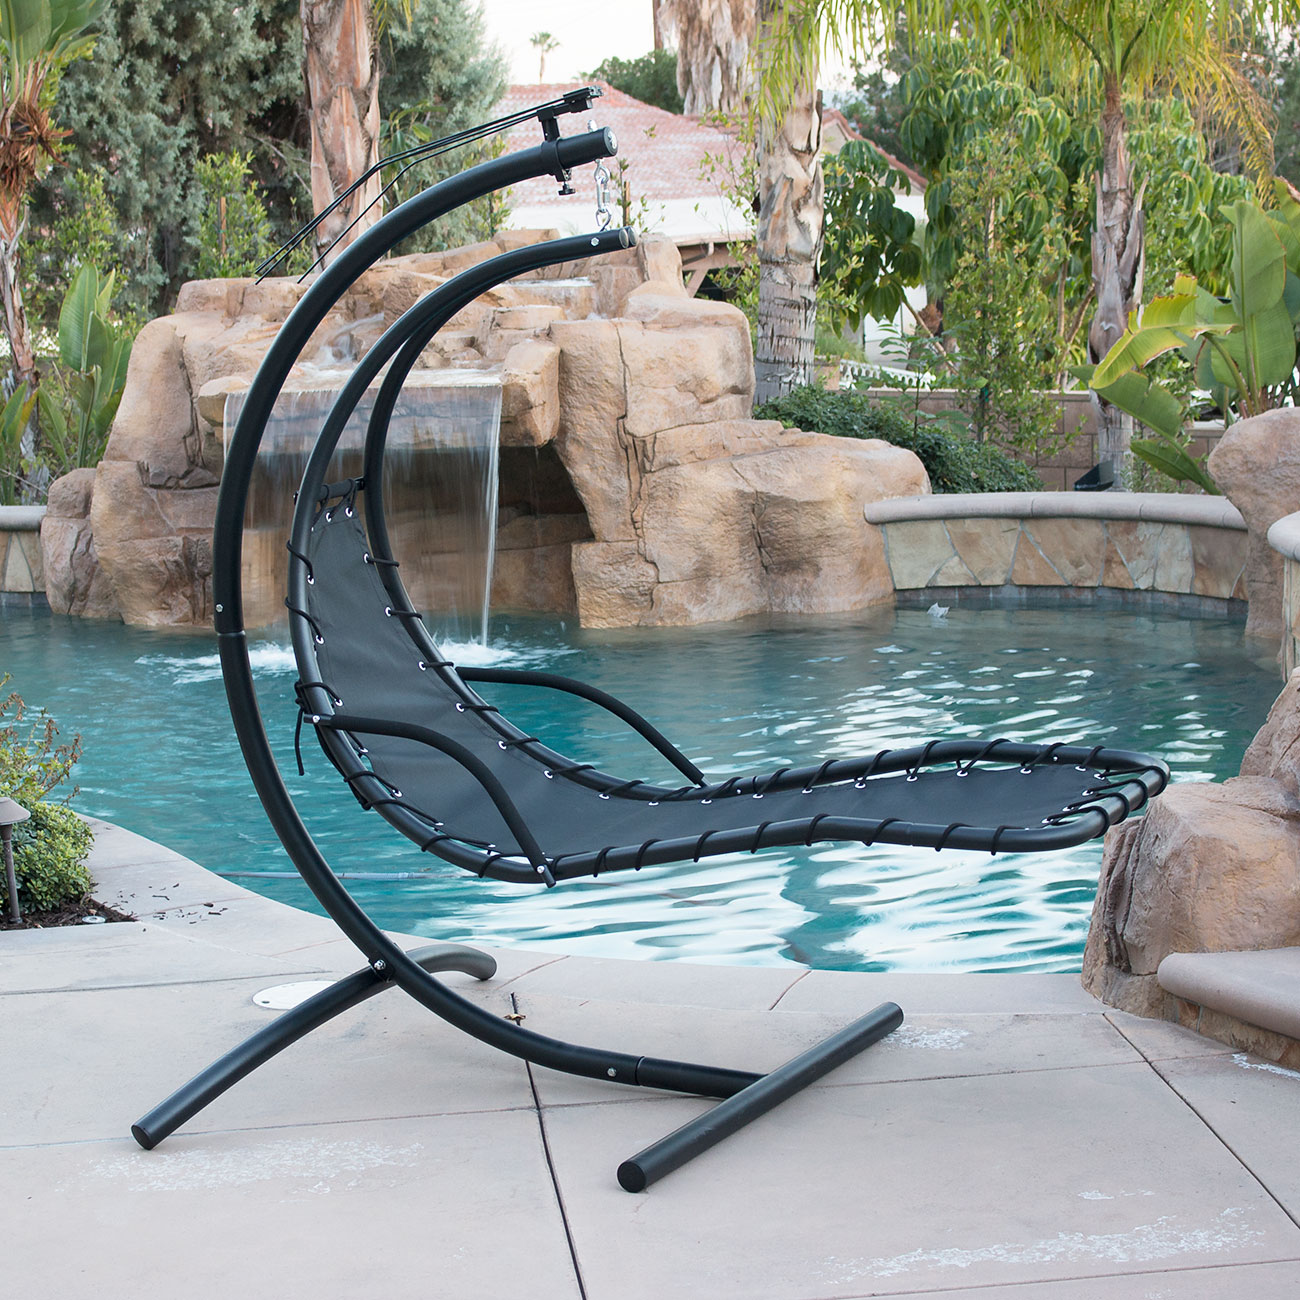 Hanging-Chaise-Lounge-Chair-Hammock-Swing-Canopy-Glider- & Hanging Chaise Lounge Chair Hammock Swing Canopy Glider Outdoor ...